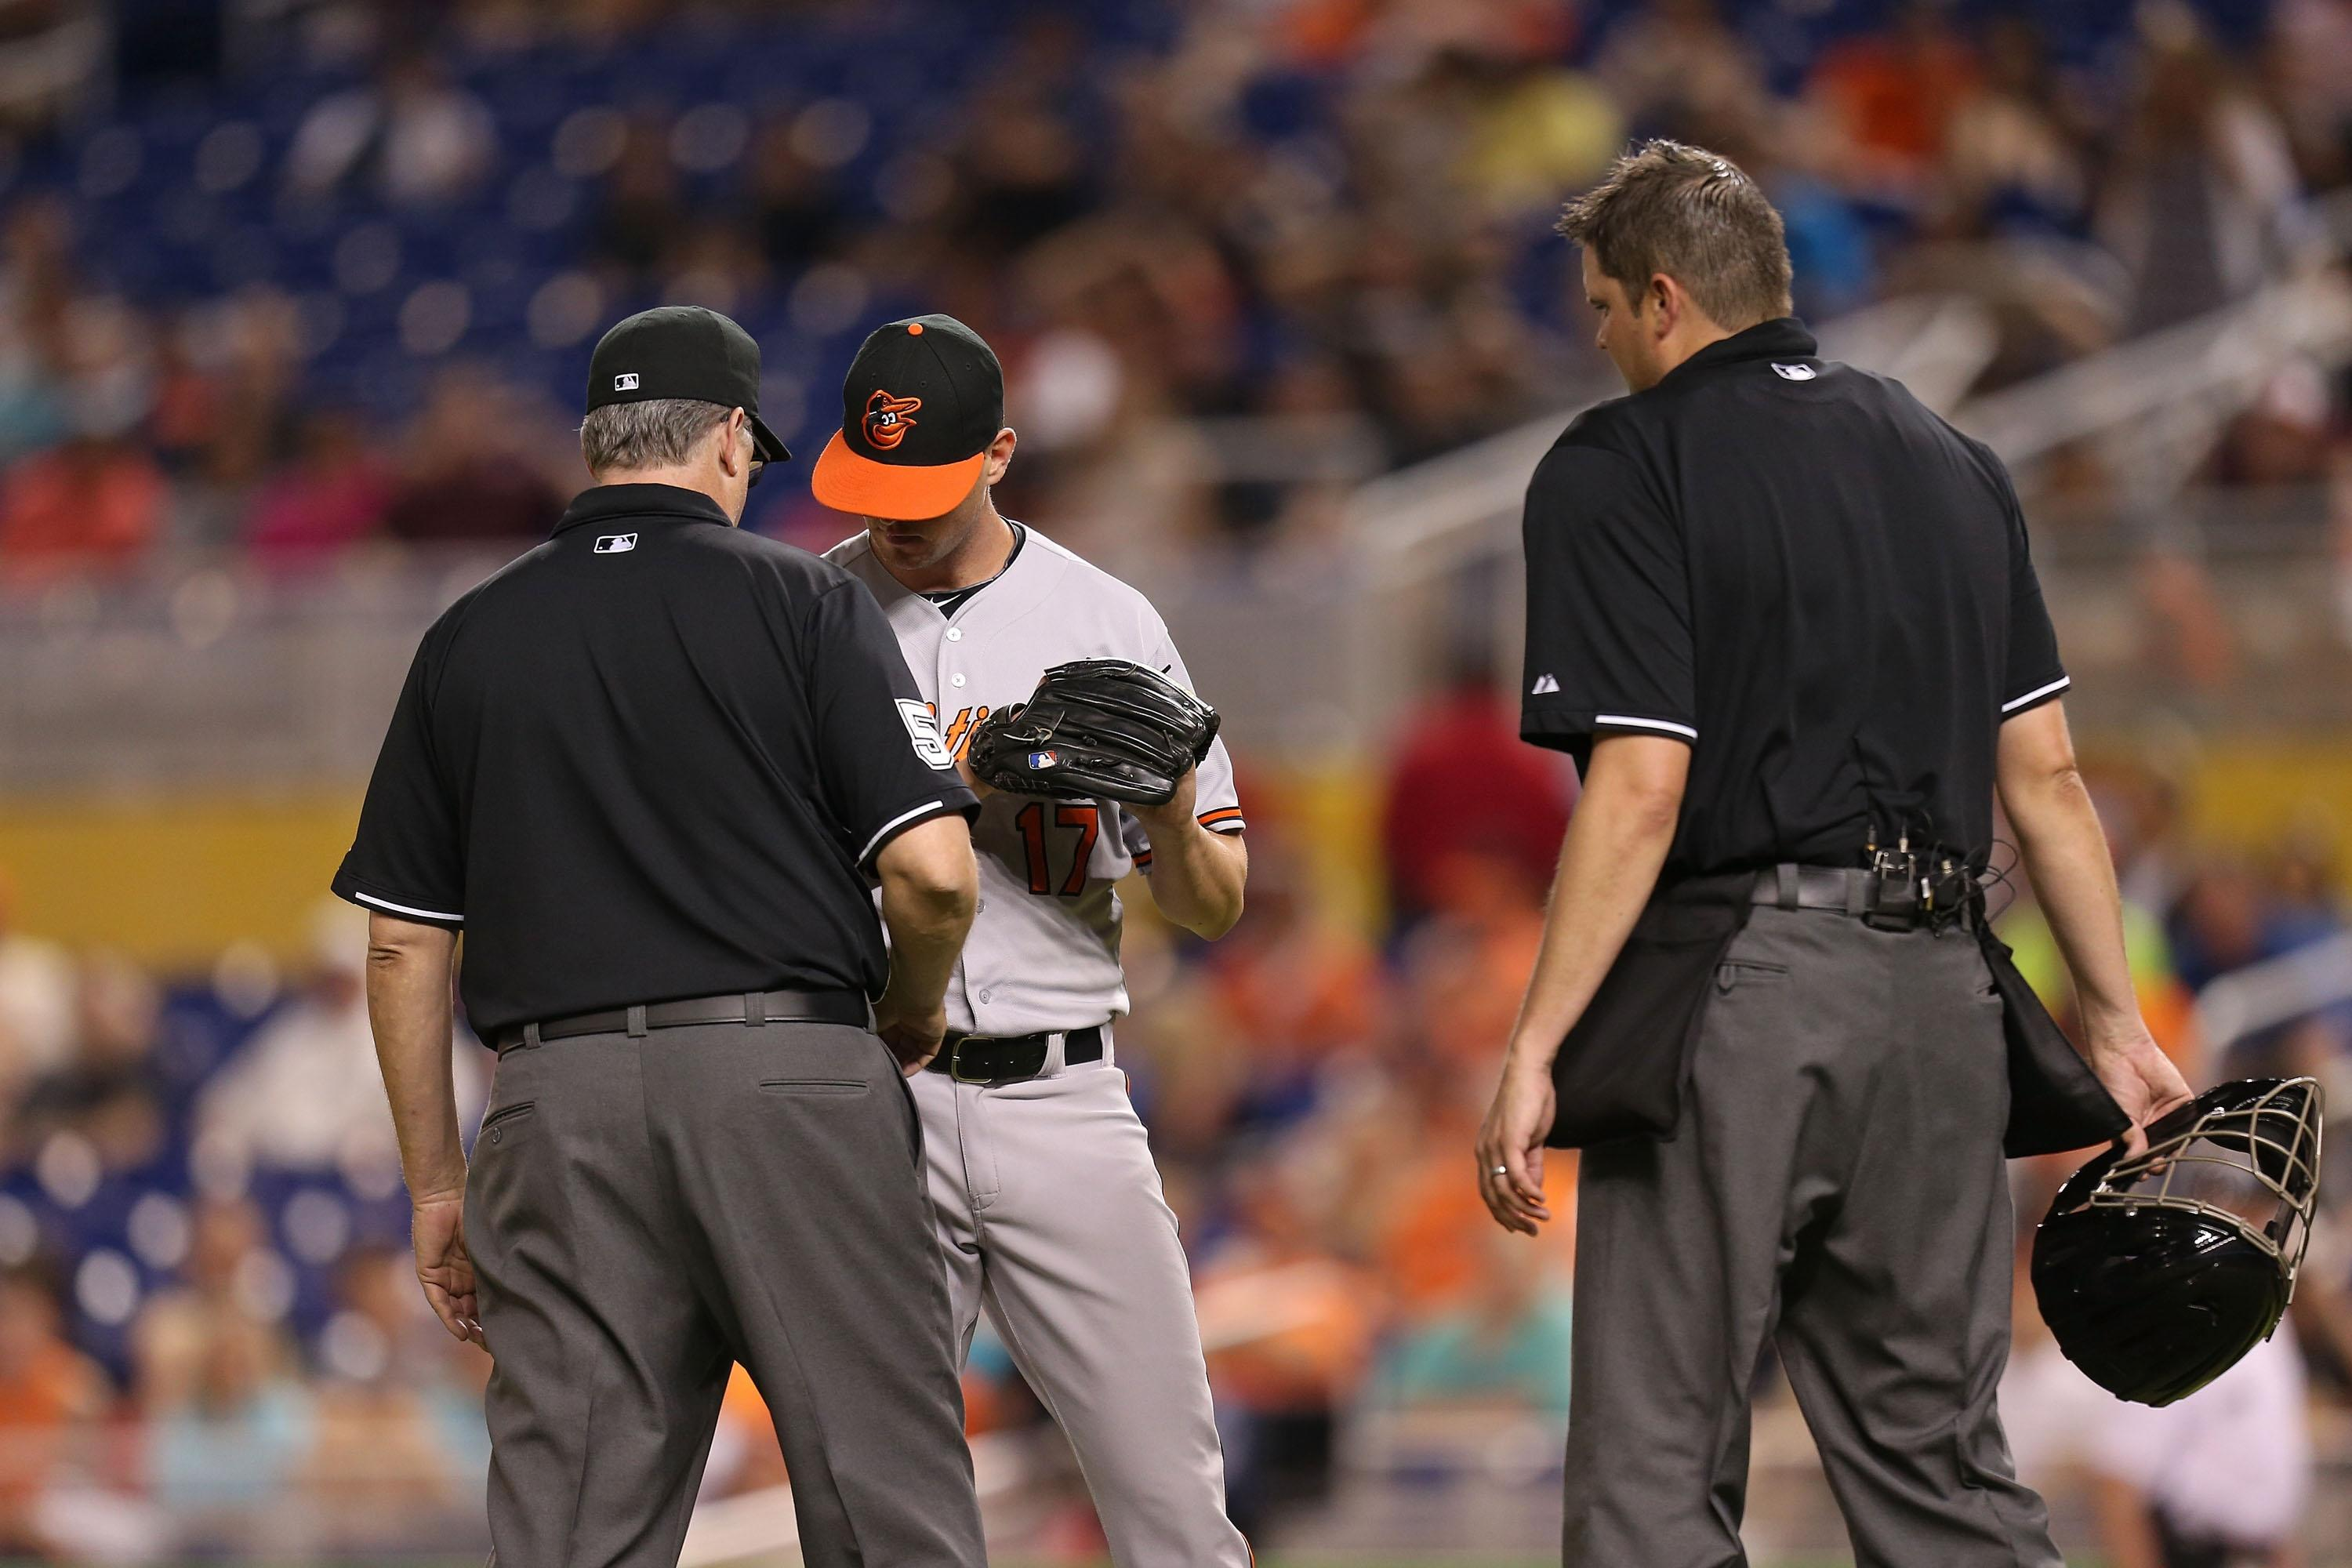 Brian Matusz ejected for having foreign substance on arm